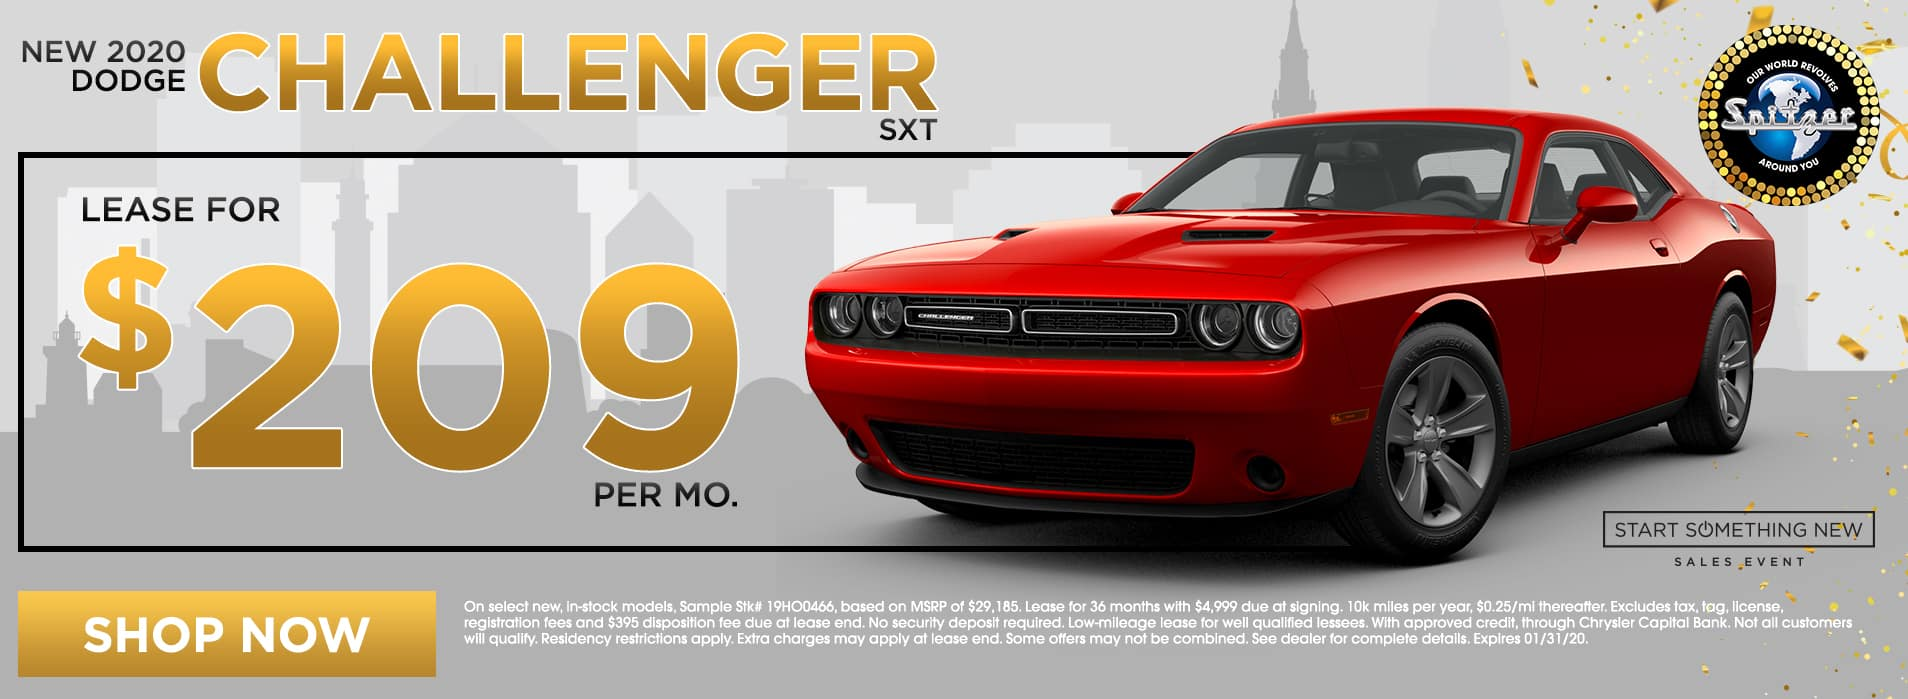 Challenger   Lease for $209 per mo